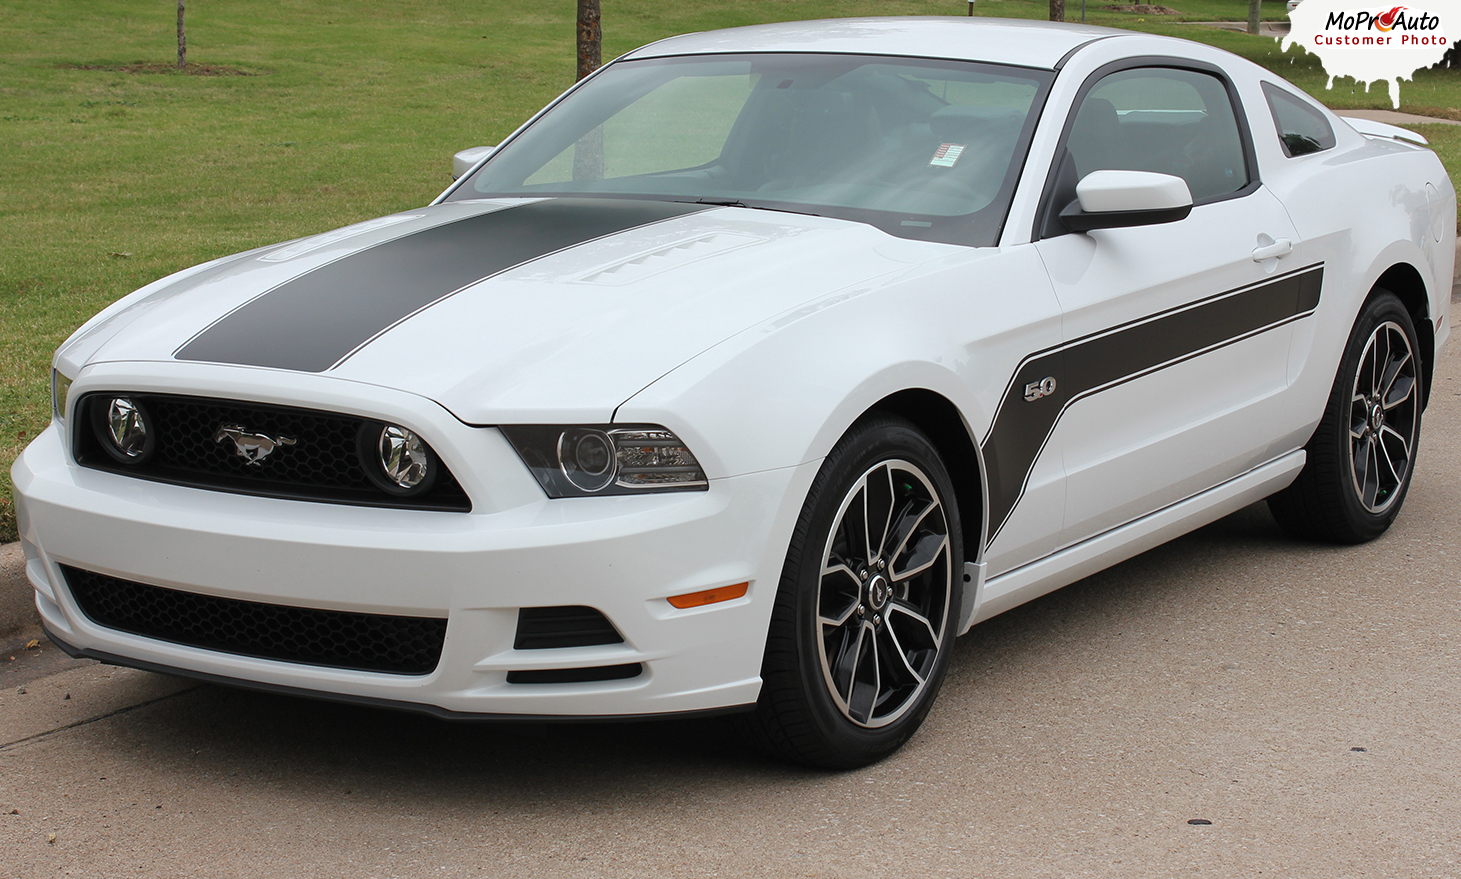 FLIGHT : Ford Mustang 2013+ MoProAuto Pro Design Series Vinyl Graphics and Decals Kit